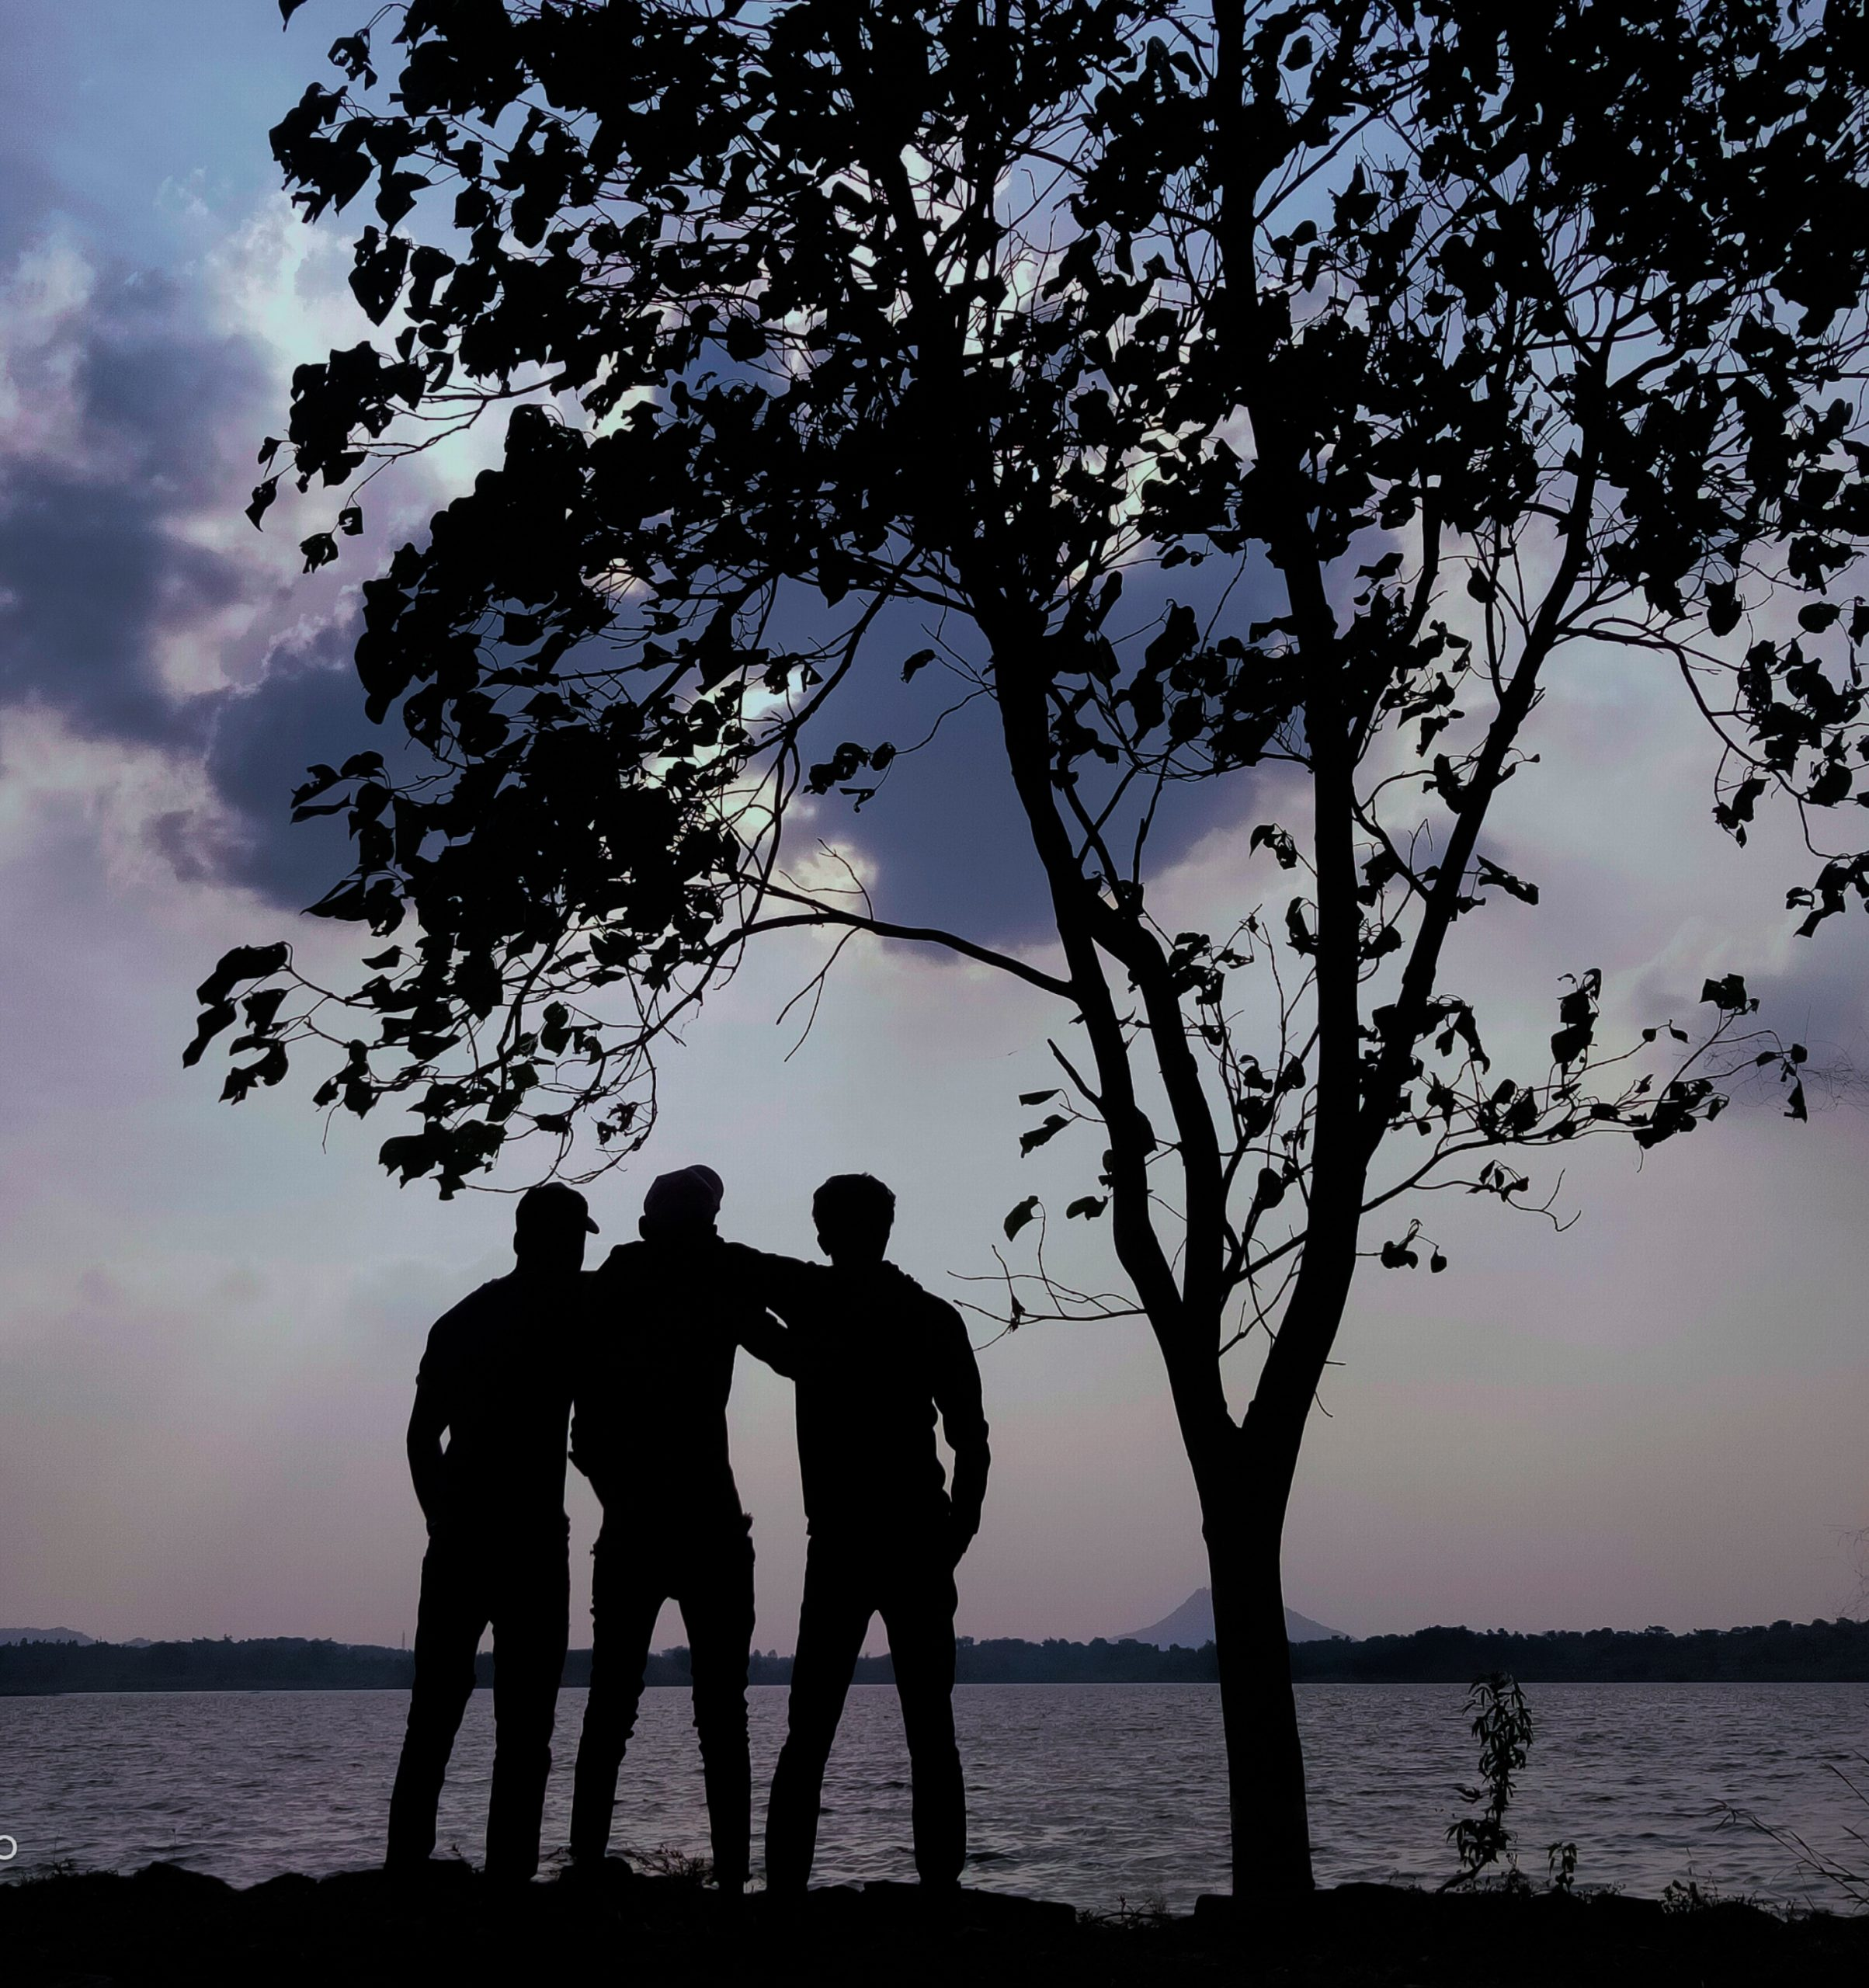 Silhouette of three friends